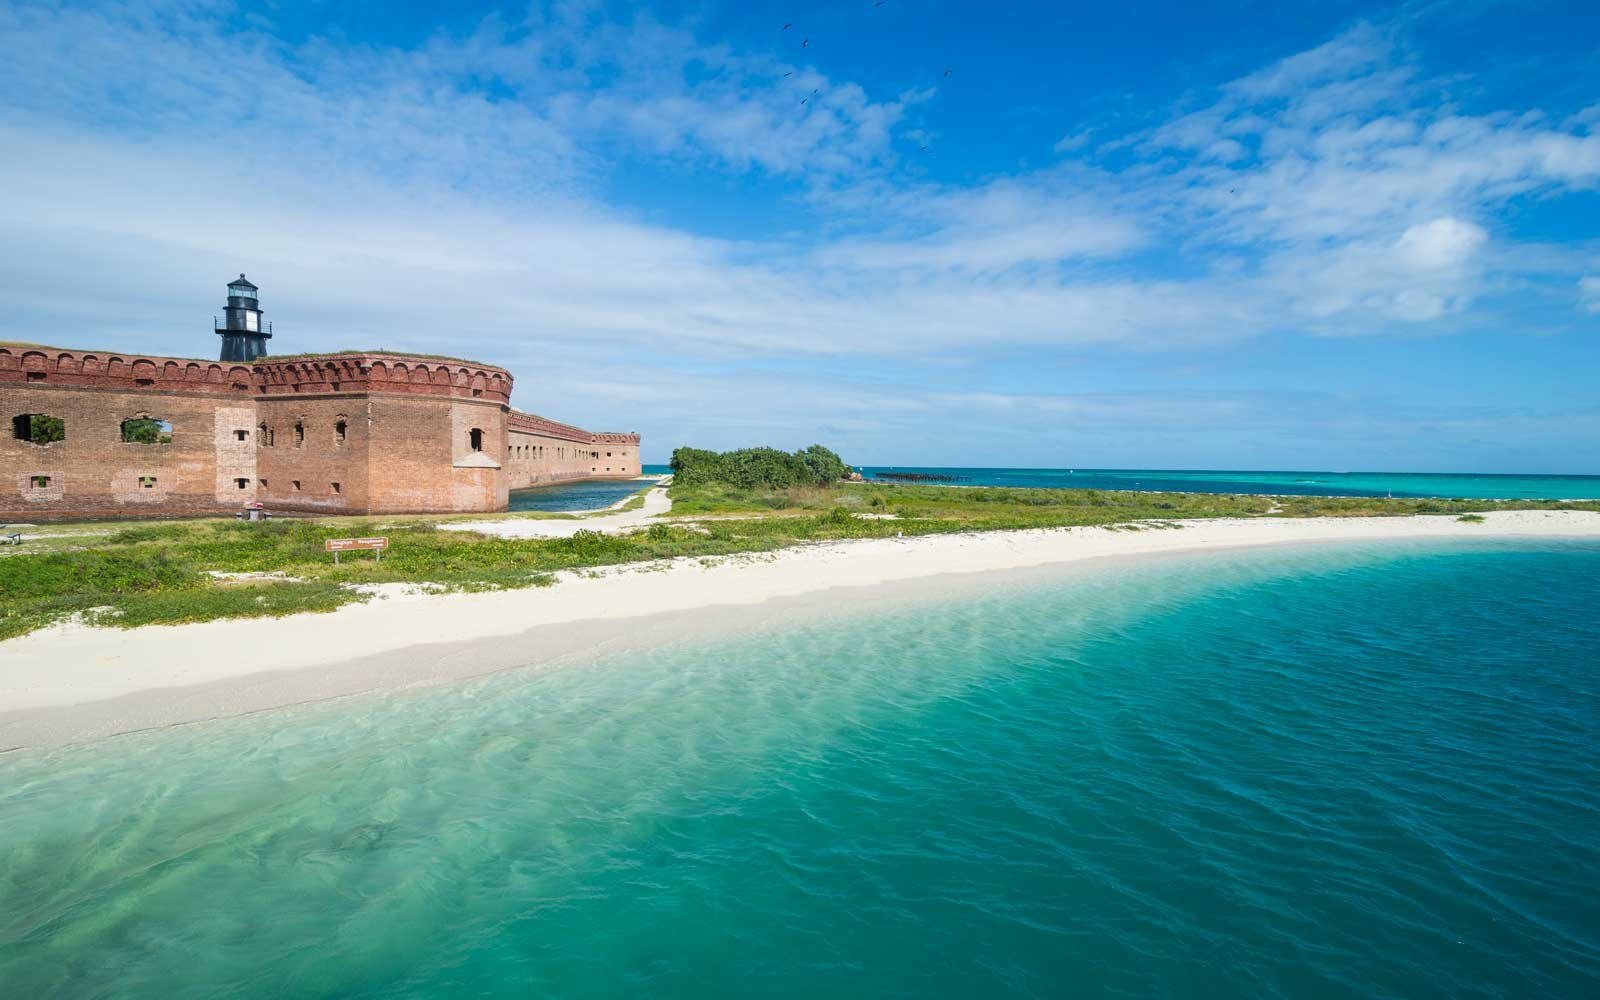 Fort Jefferson, Dry Tortugas National Park, Florida Keys, Florida